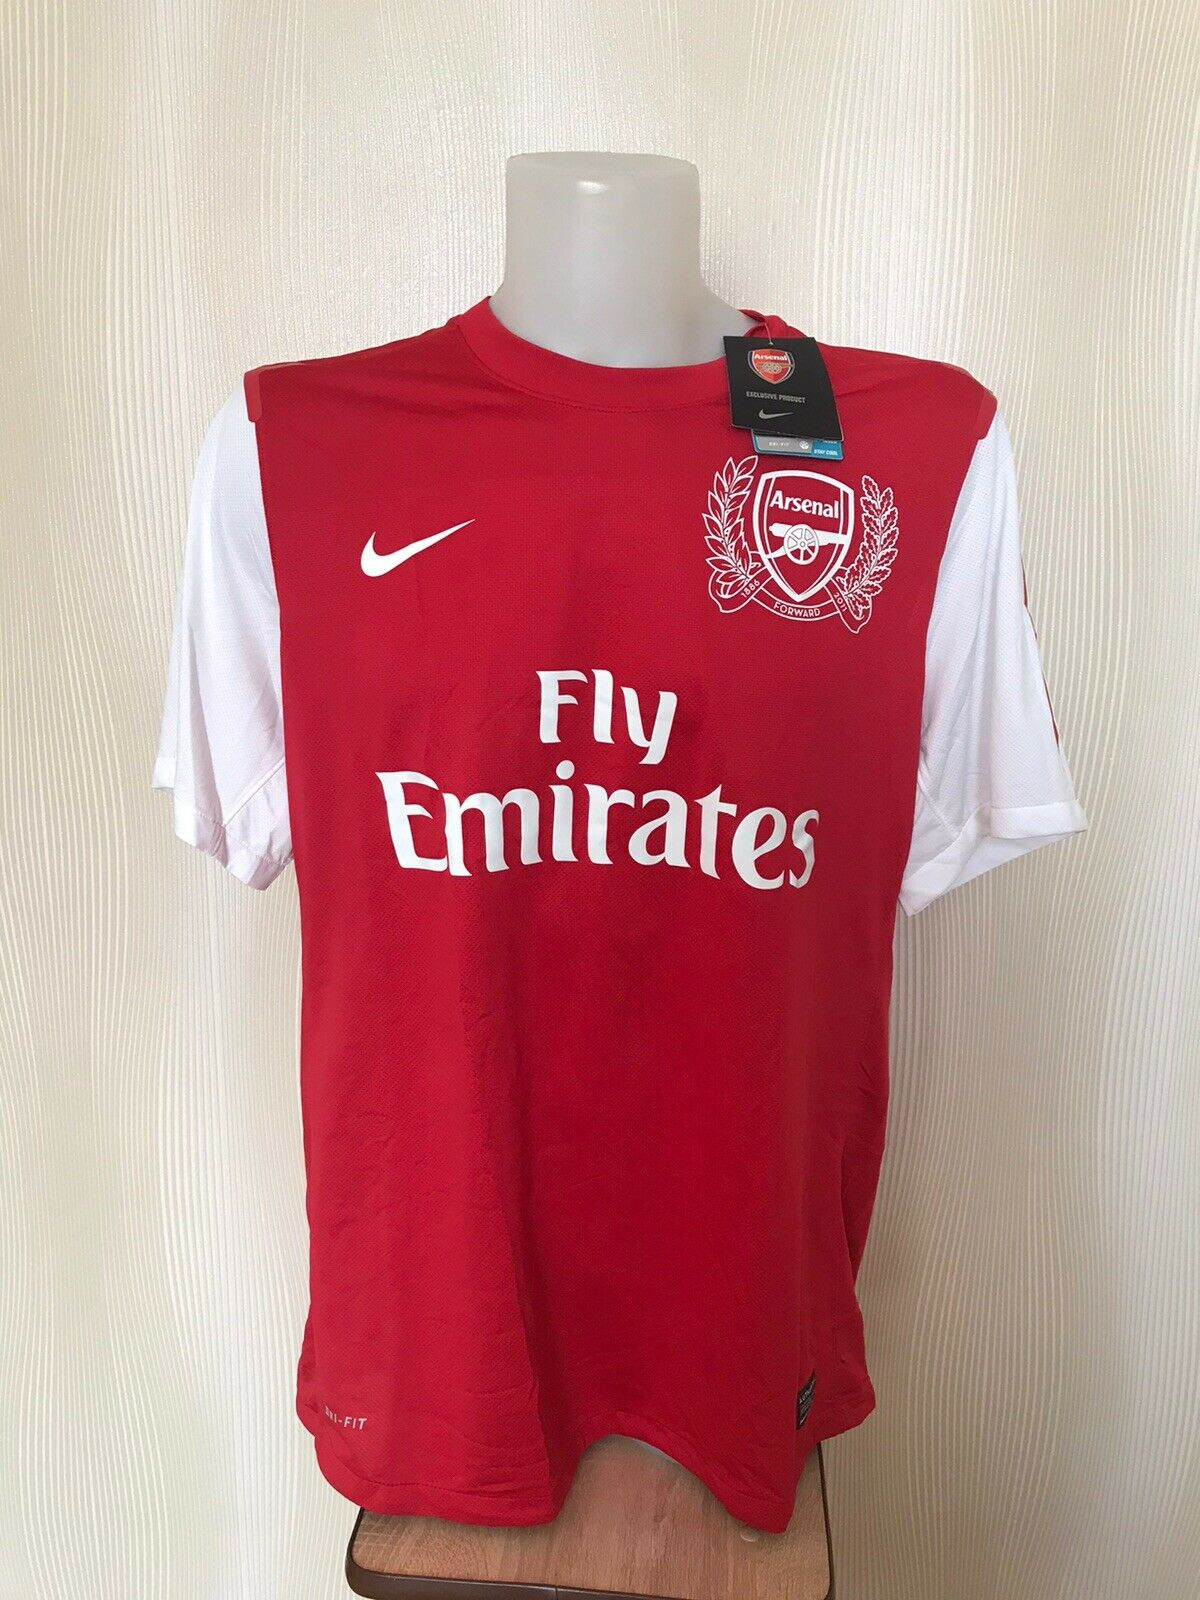 Arsenal London 2011/12 Home 2XL Nike 423978-620 AUTHENTIC jersey